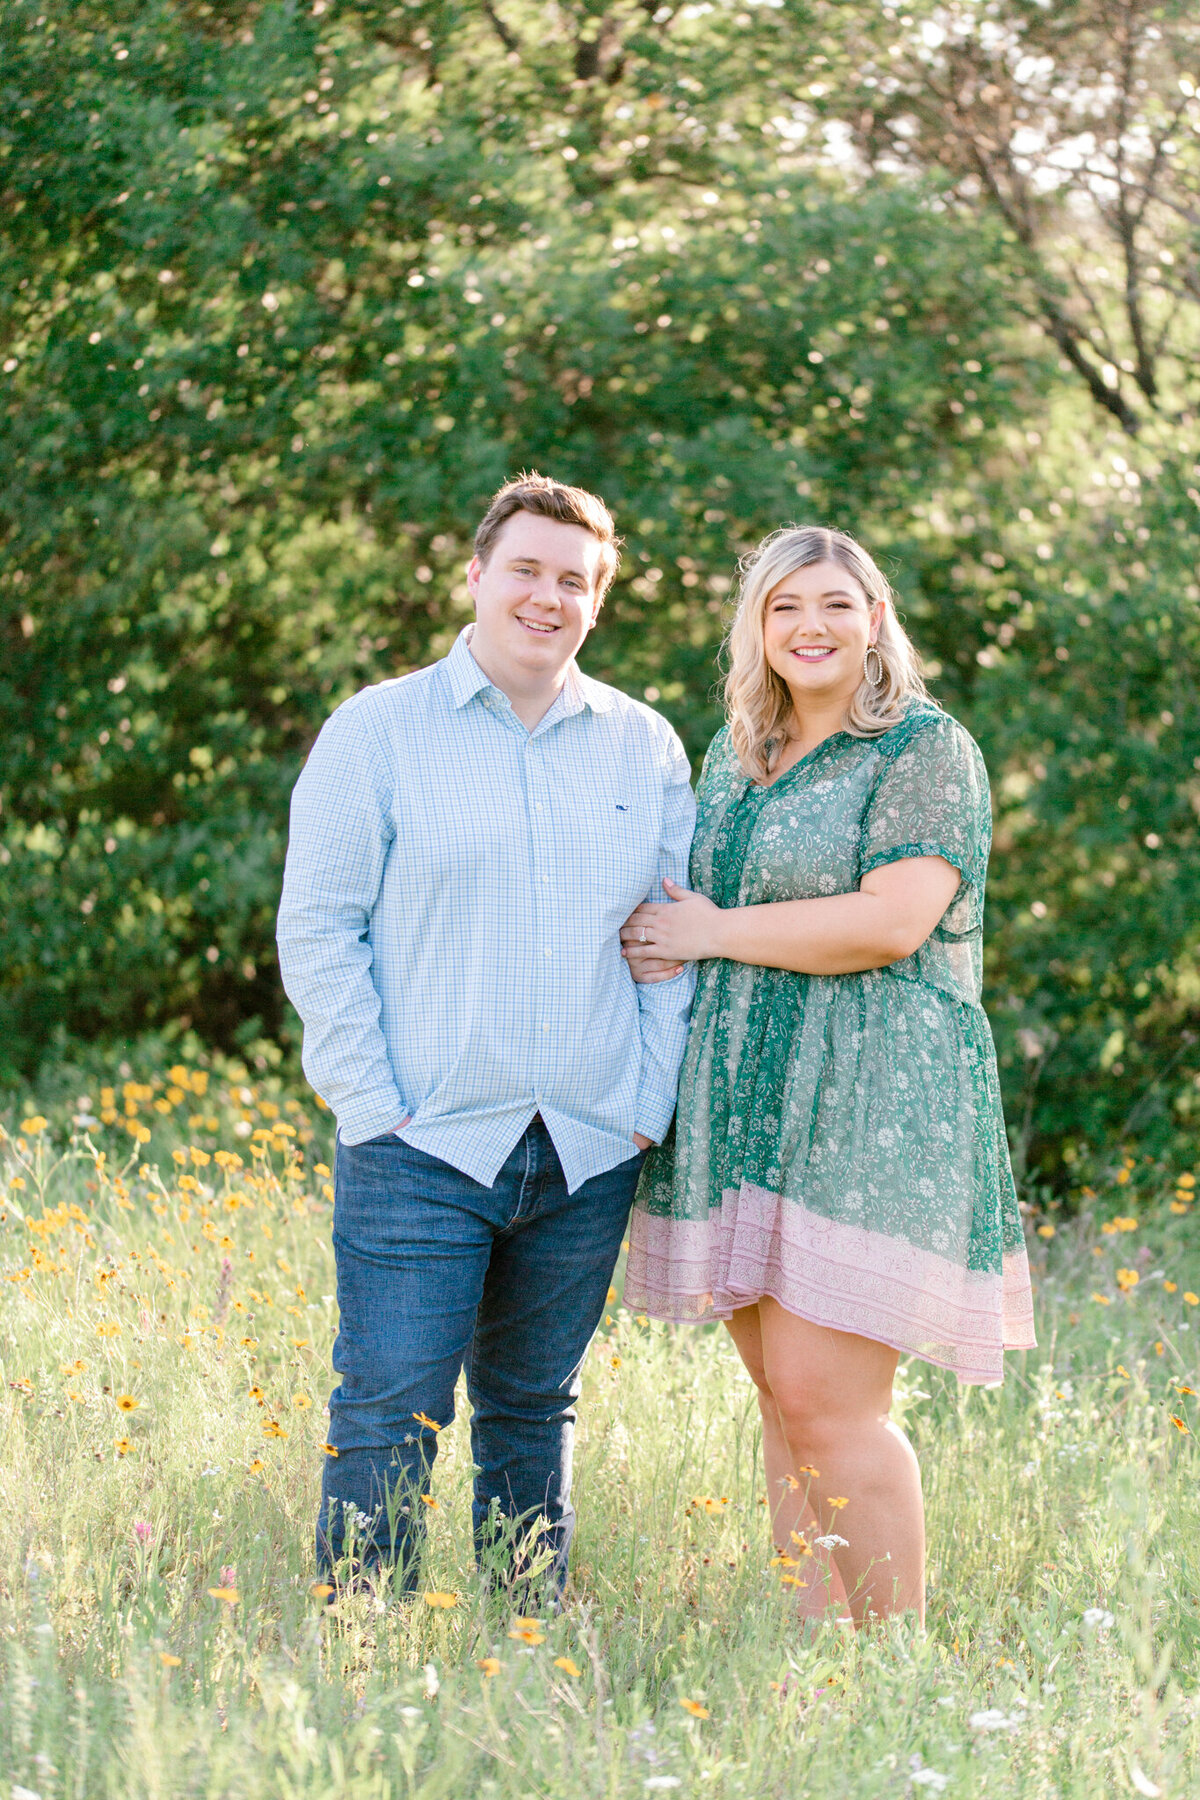 Maddie & Chris Engagement Session at Tandy Hills Natural Area | Sami Kathryn Photography | Dallas DFW Fort Worth Wedding and Portrait Photogapher-10